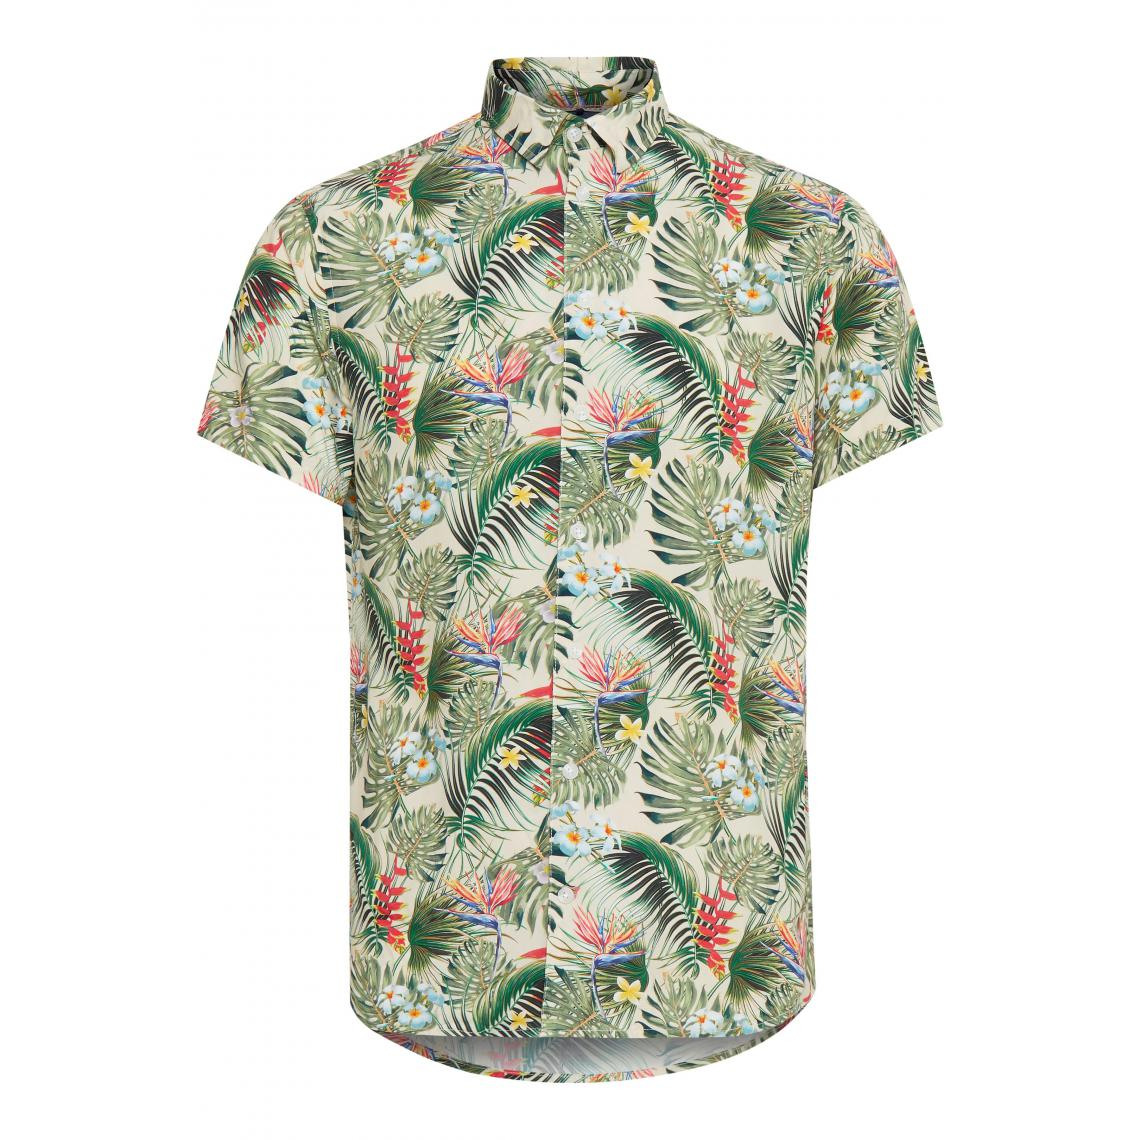 Chemise manches courtes hawaïenne